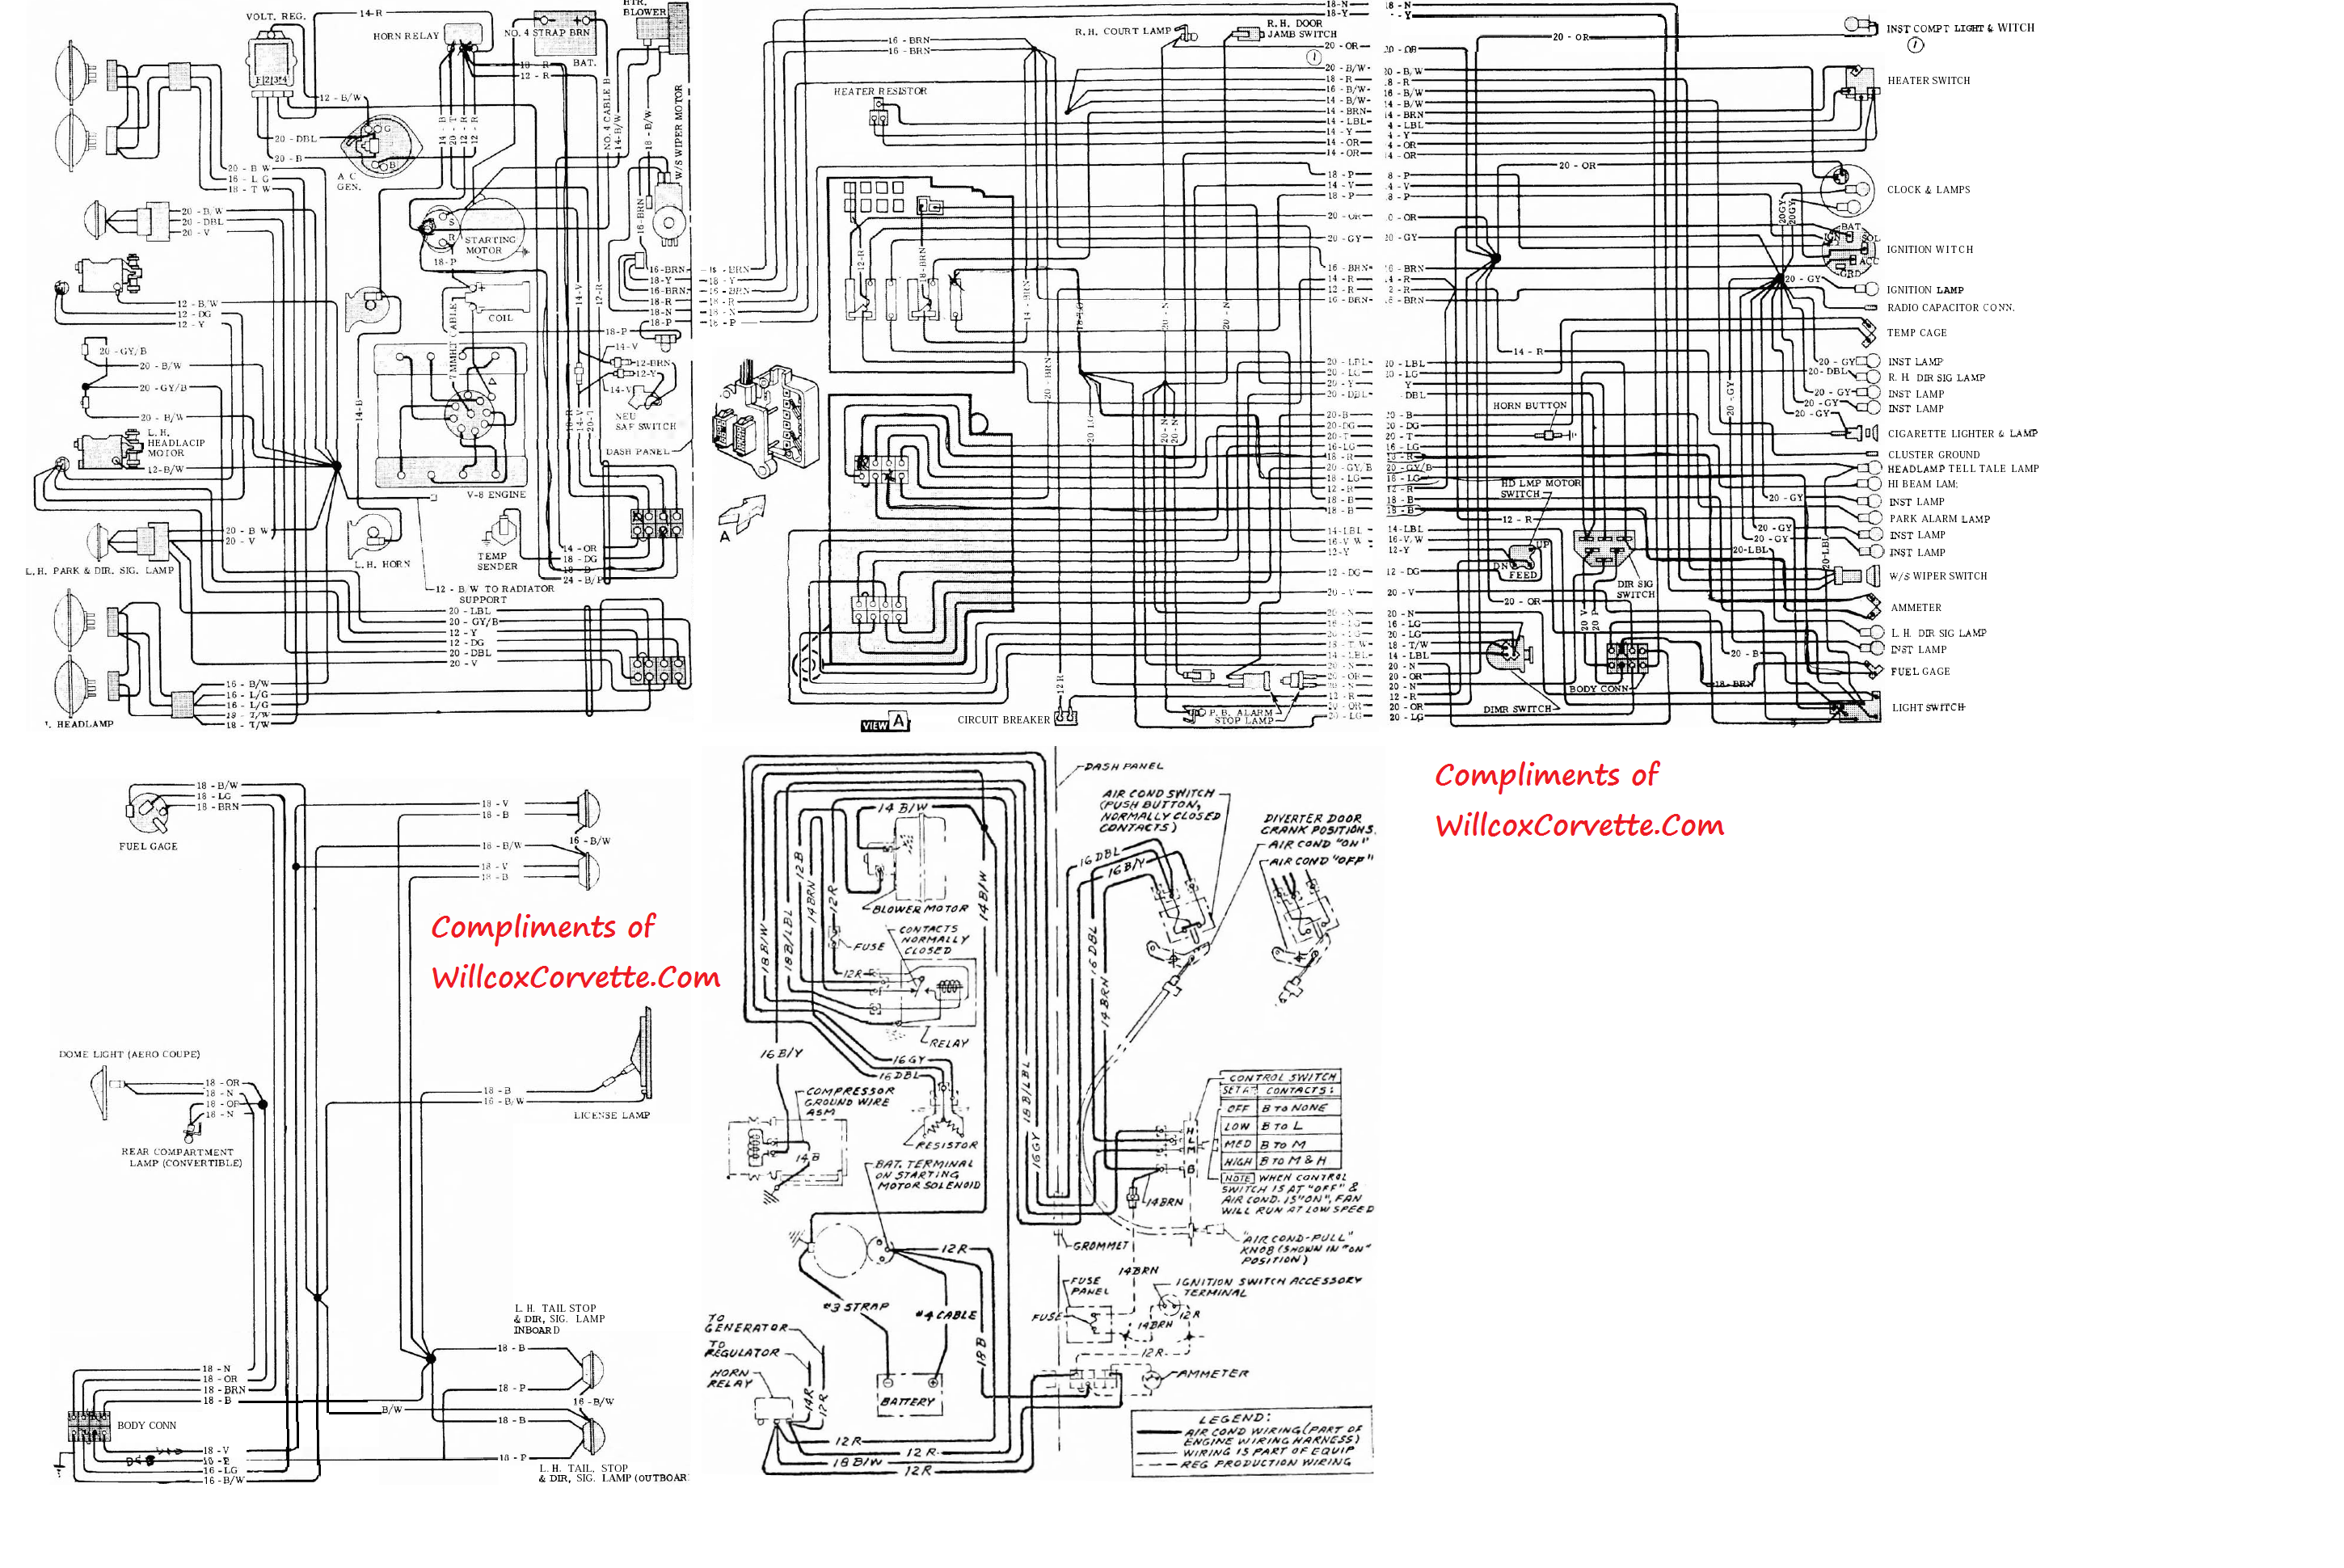 1963 Corvette Tracer Wiring Diagram Tracer Schematic 1963 corvette tracer wiring diagram tracer schematic willcox 2001 corvette wiring diagram at fashall.co